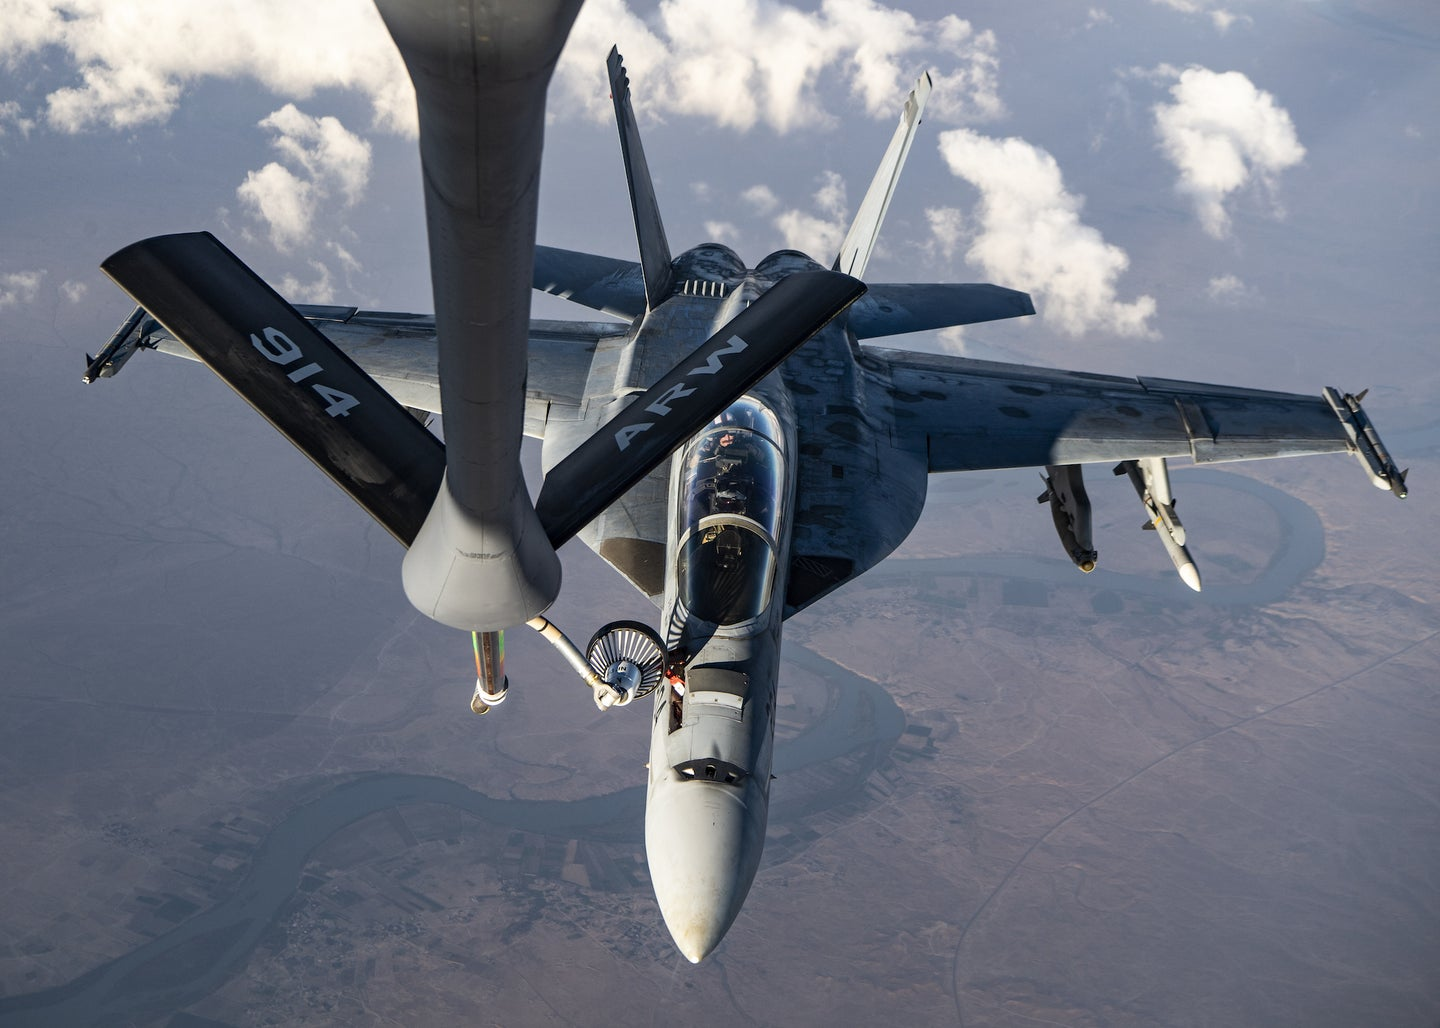 A F/A-18 Super Hornet is refueled the traditional way: by an aircraft with humans on board.